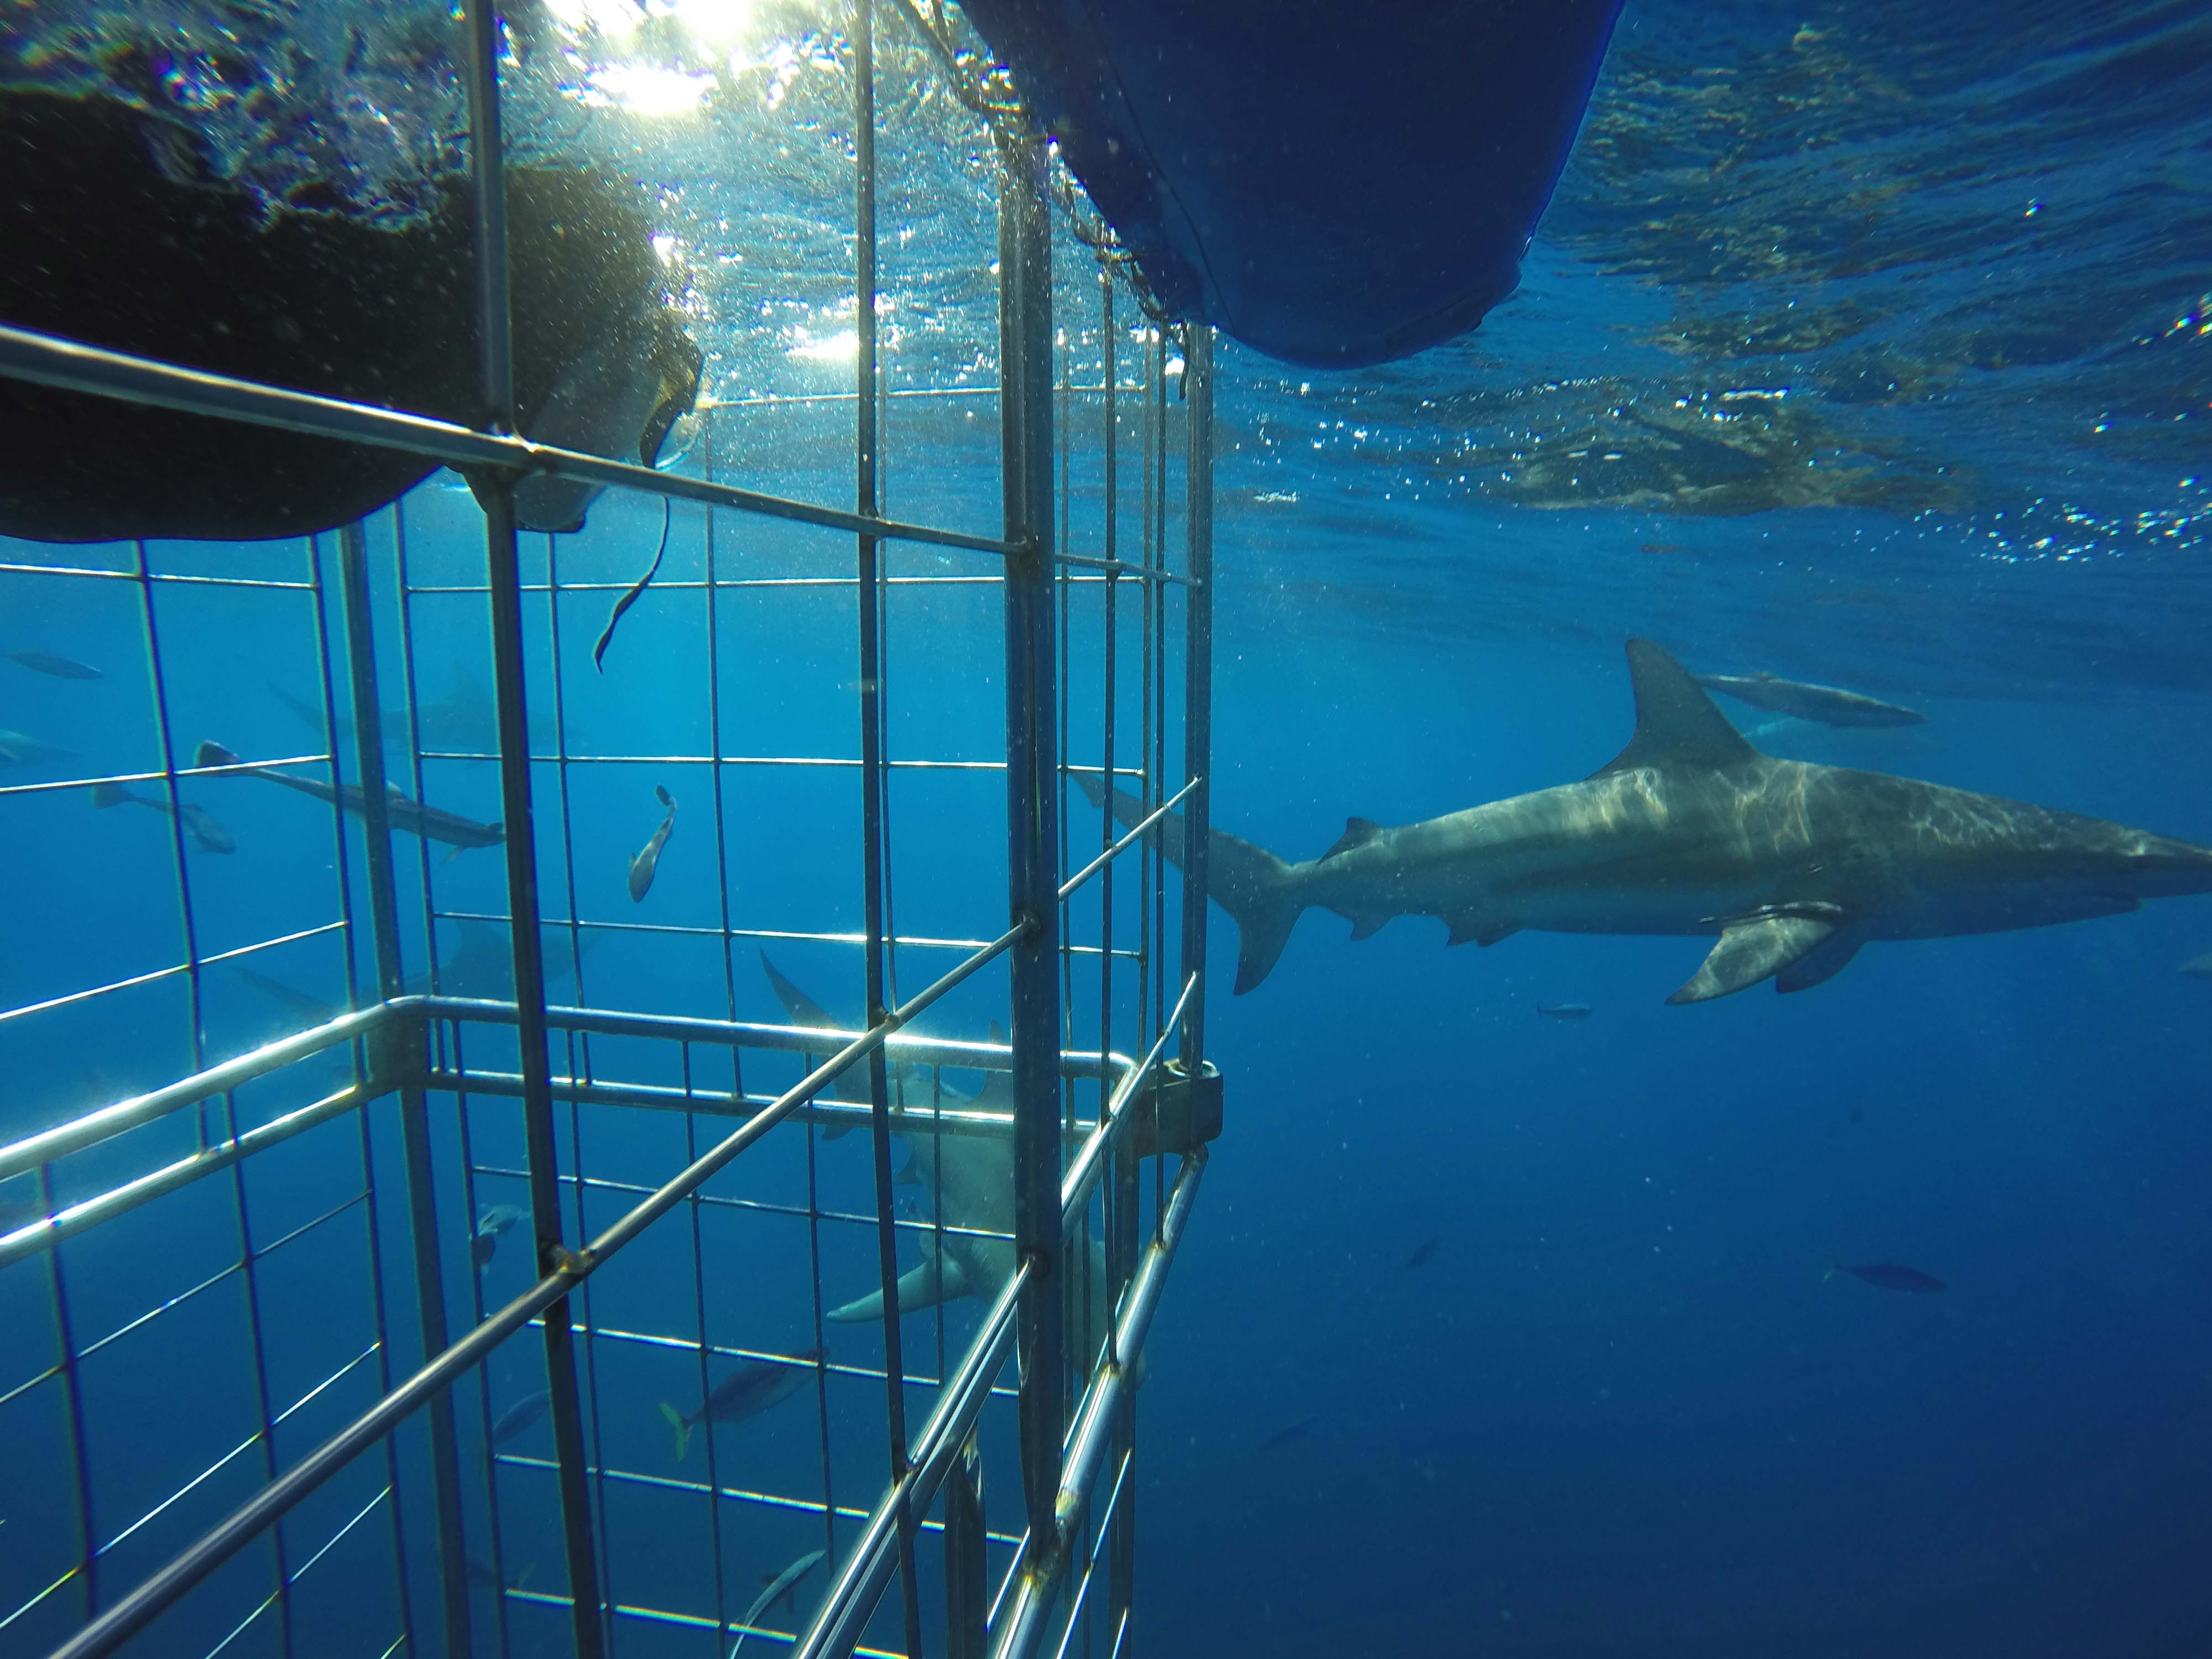 SHARK CAGE DIVING - This is your perfect next shark adventure. Don't worry is you can't swim. the bottom of the cage will stop you sinking very far. You will also be behind stell bars, and thus the sharks will know their place, and you will know yours. PERFECT!